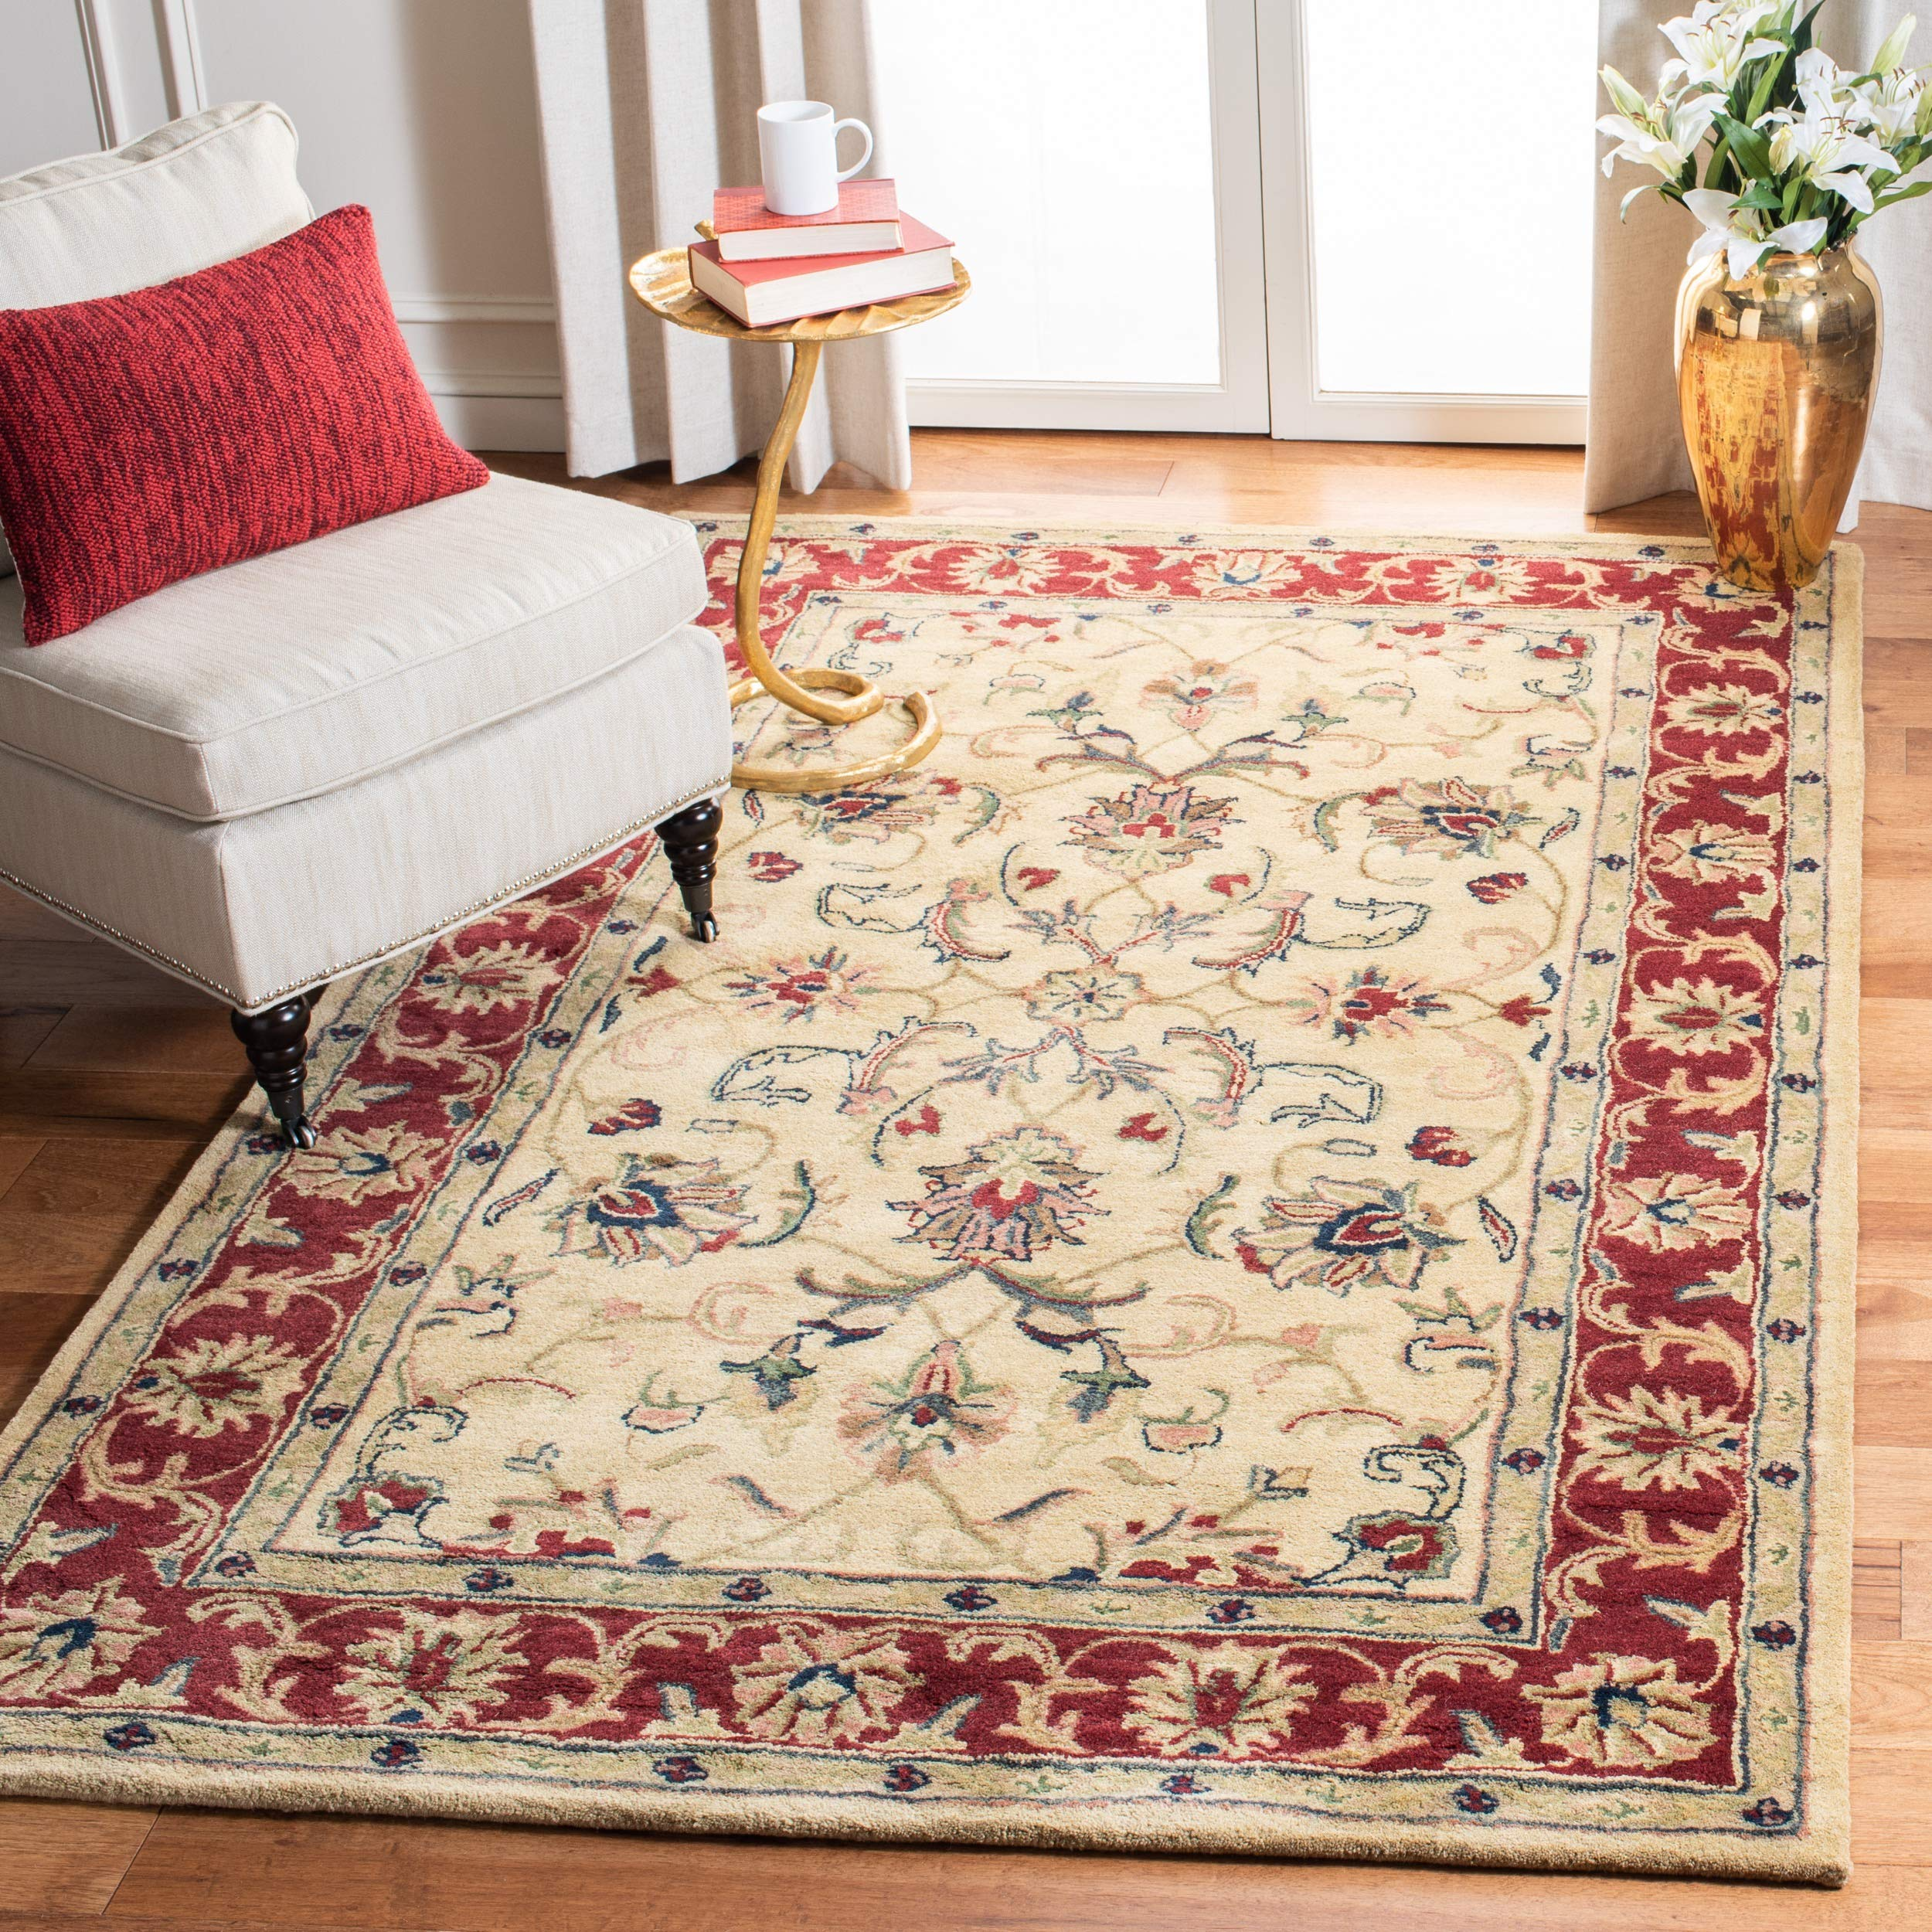 Safavieh Classic Collection Cl398a Handmade Traditional Oriental Premium Wool Area Rug 5 X 8 Gold Red Furniture Decor